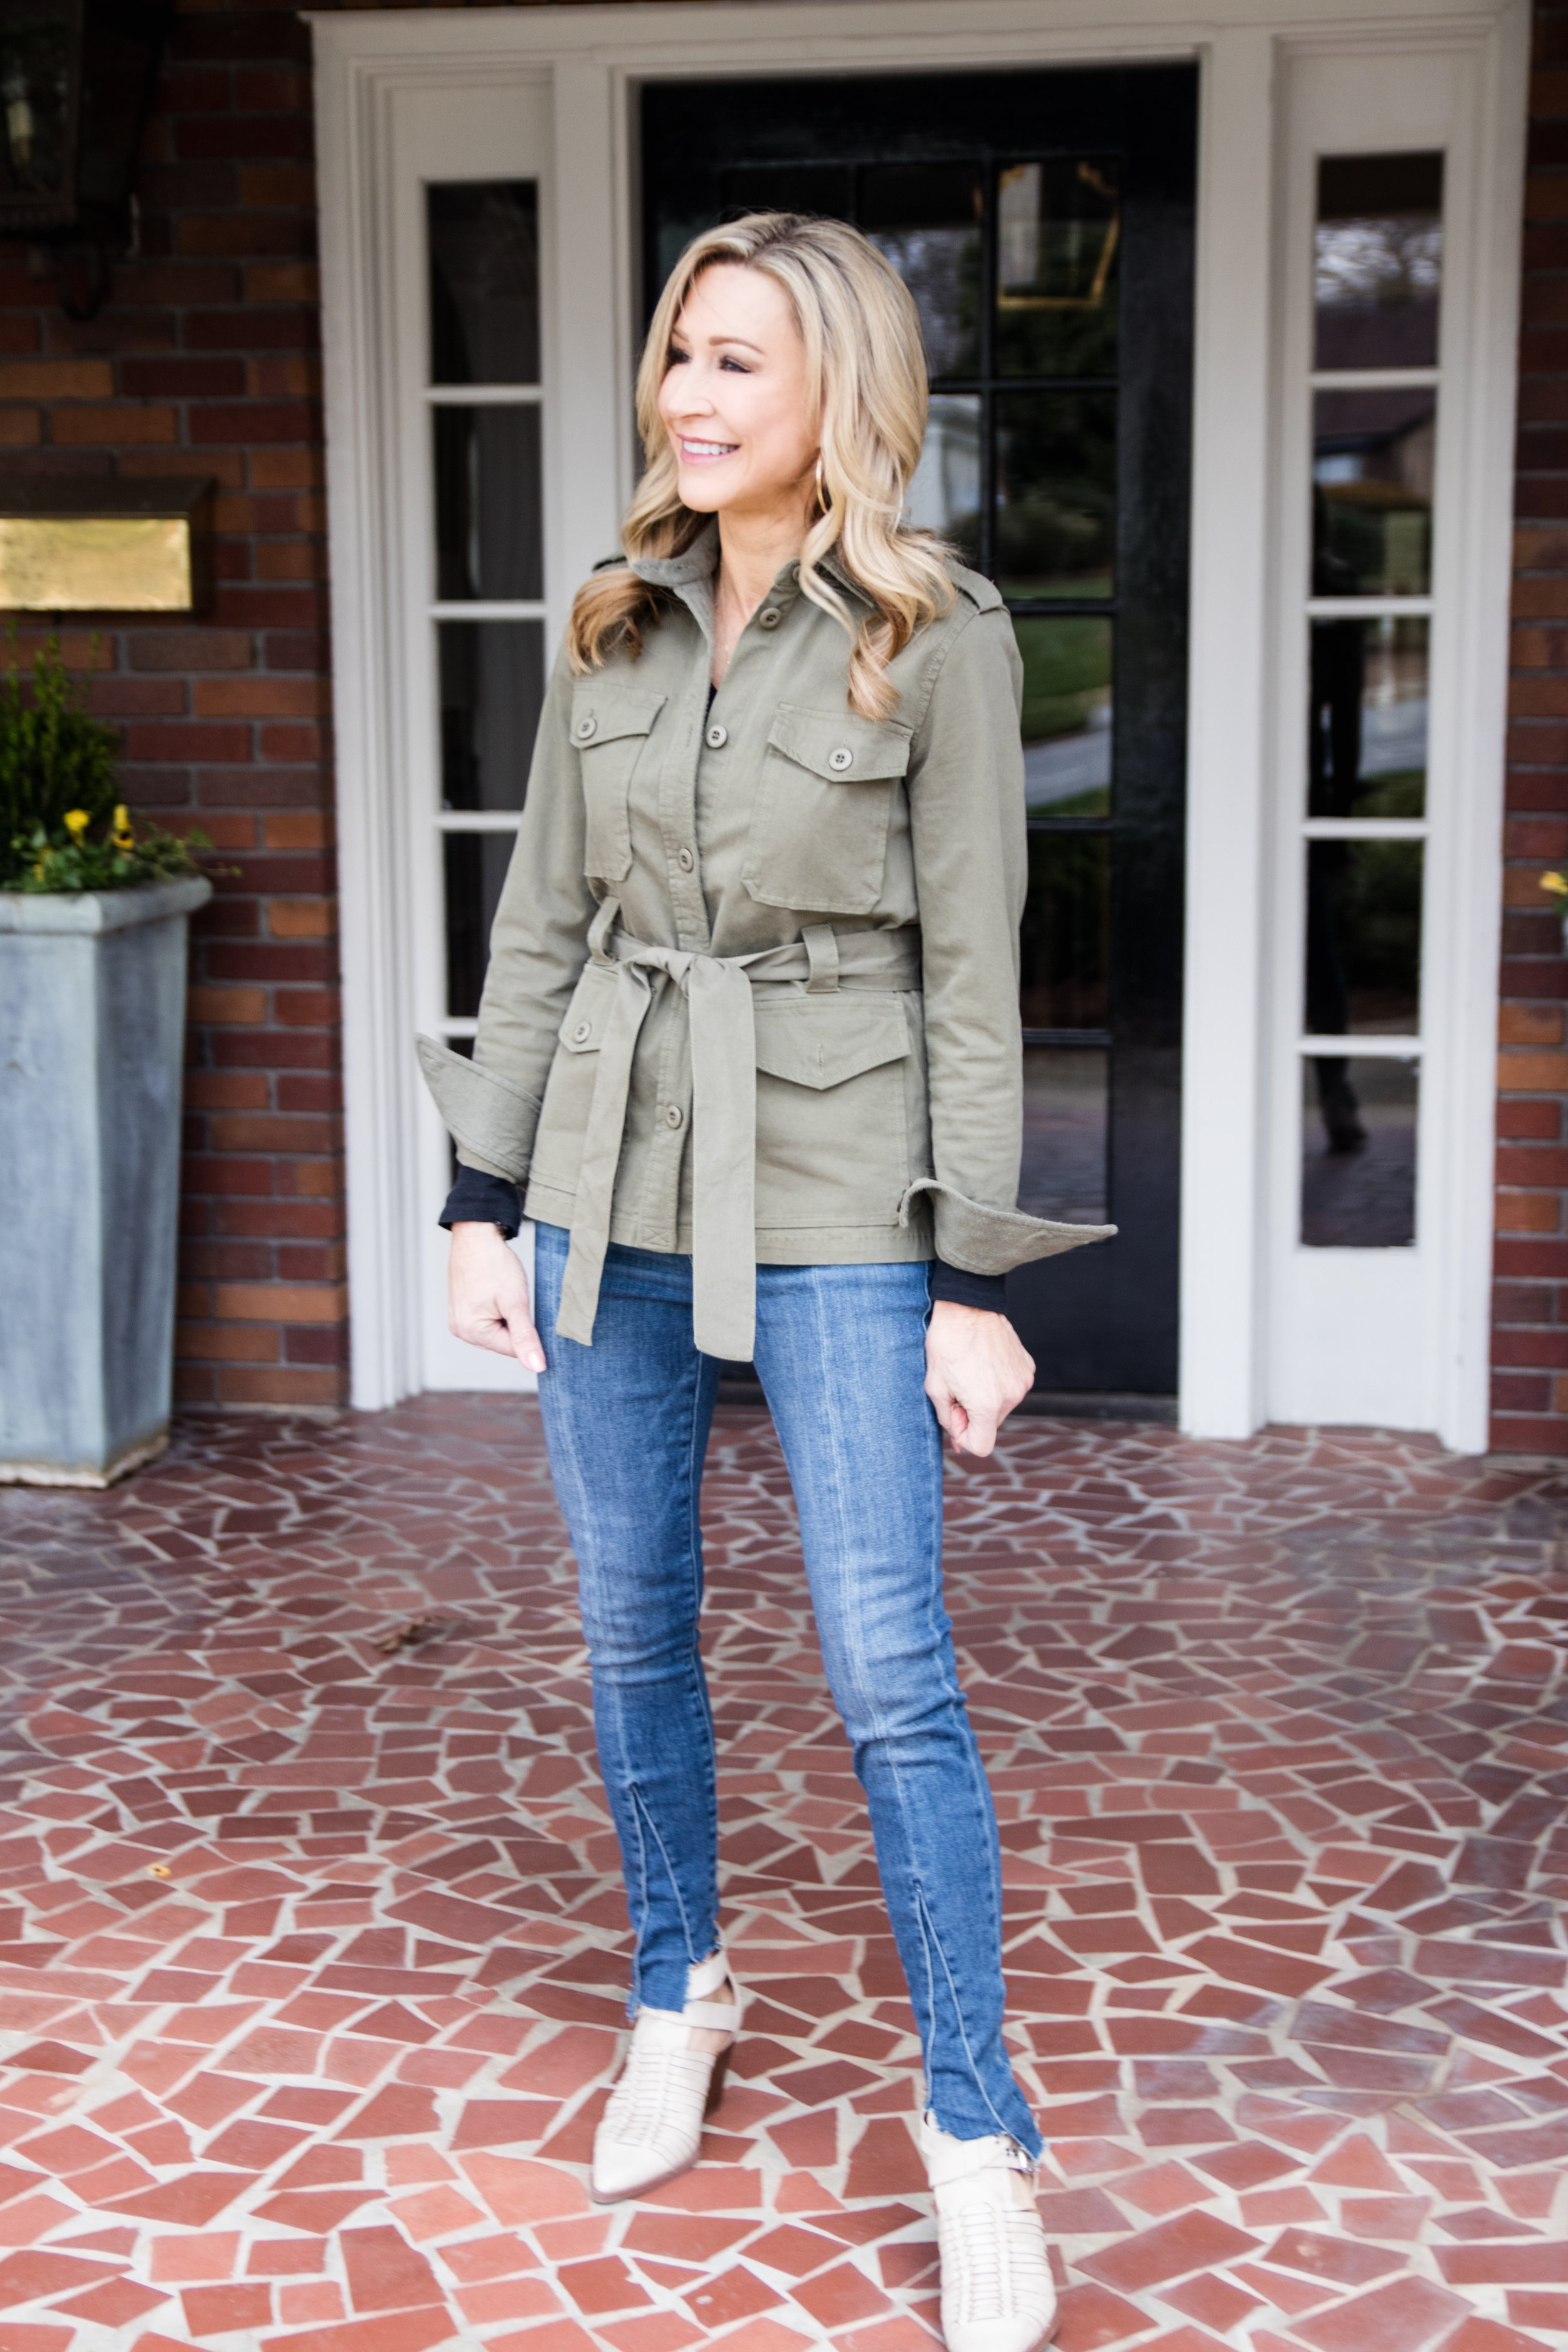 30 Outfit Ideas for Spring - Crazy Blonde Life